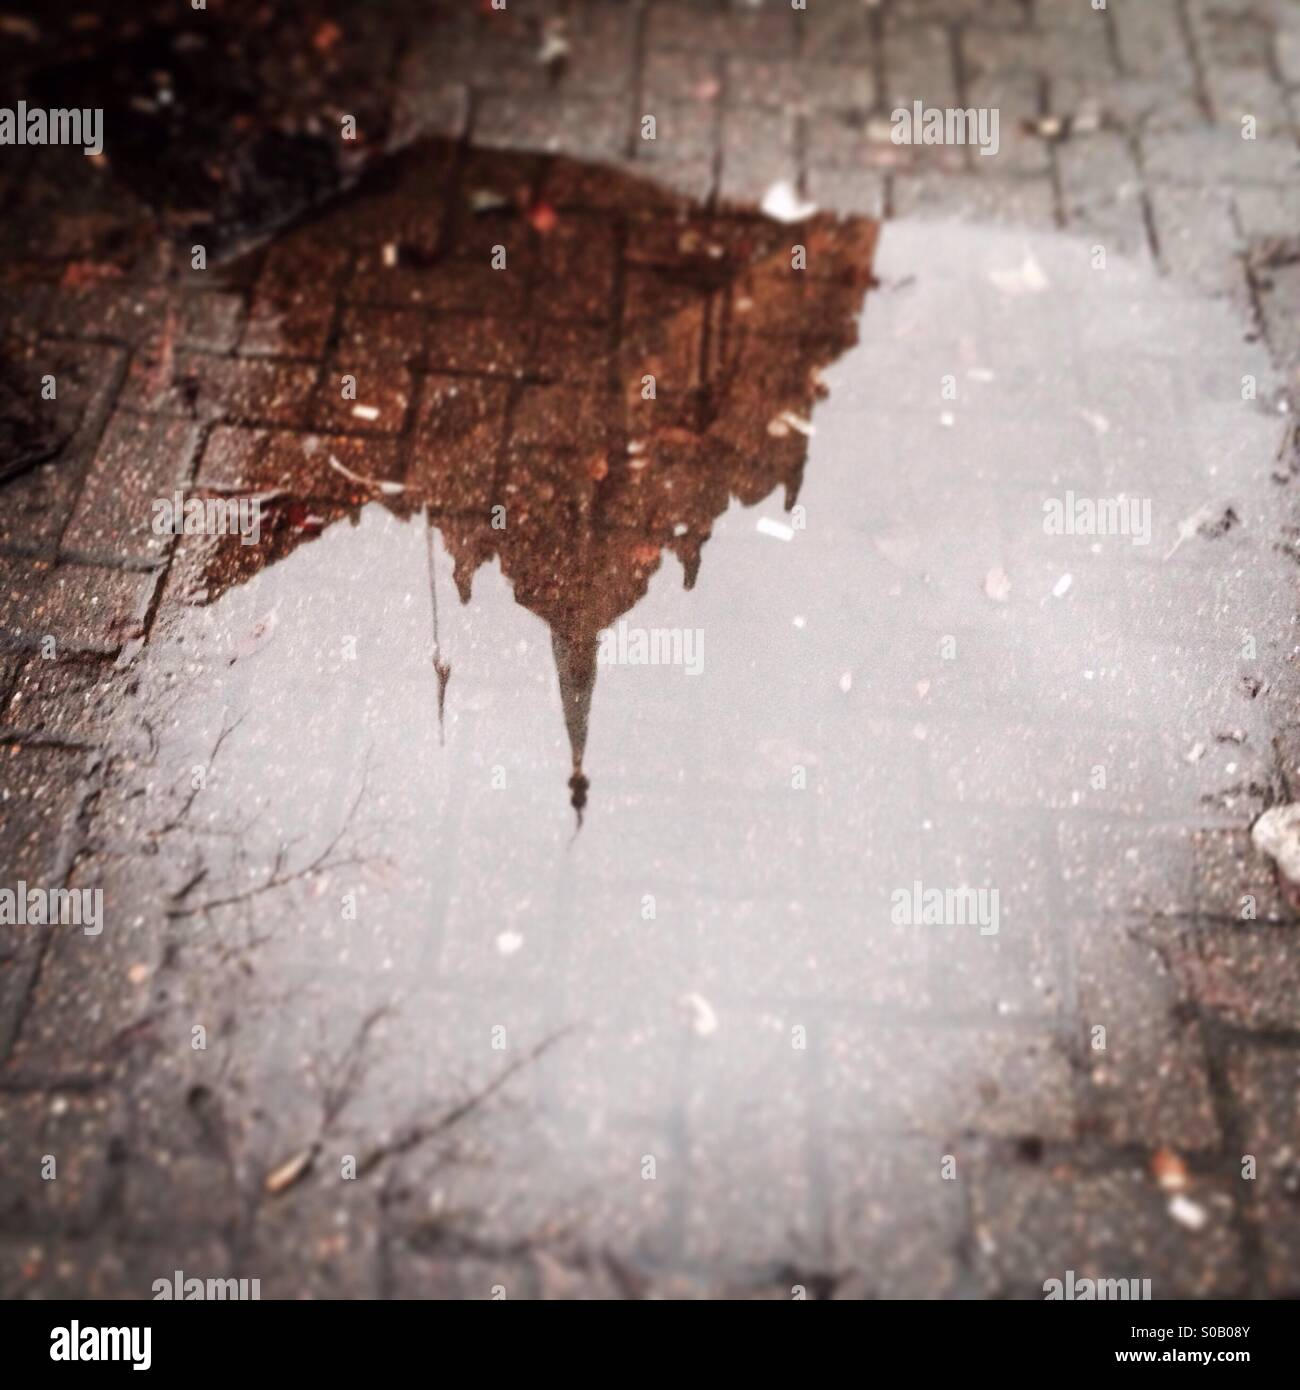 Chelmsford cathedral reflected in puddle - Stock Image